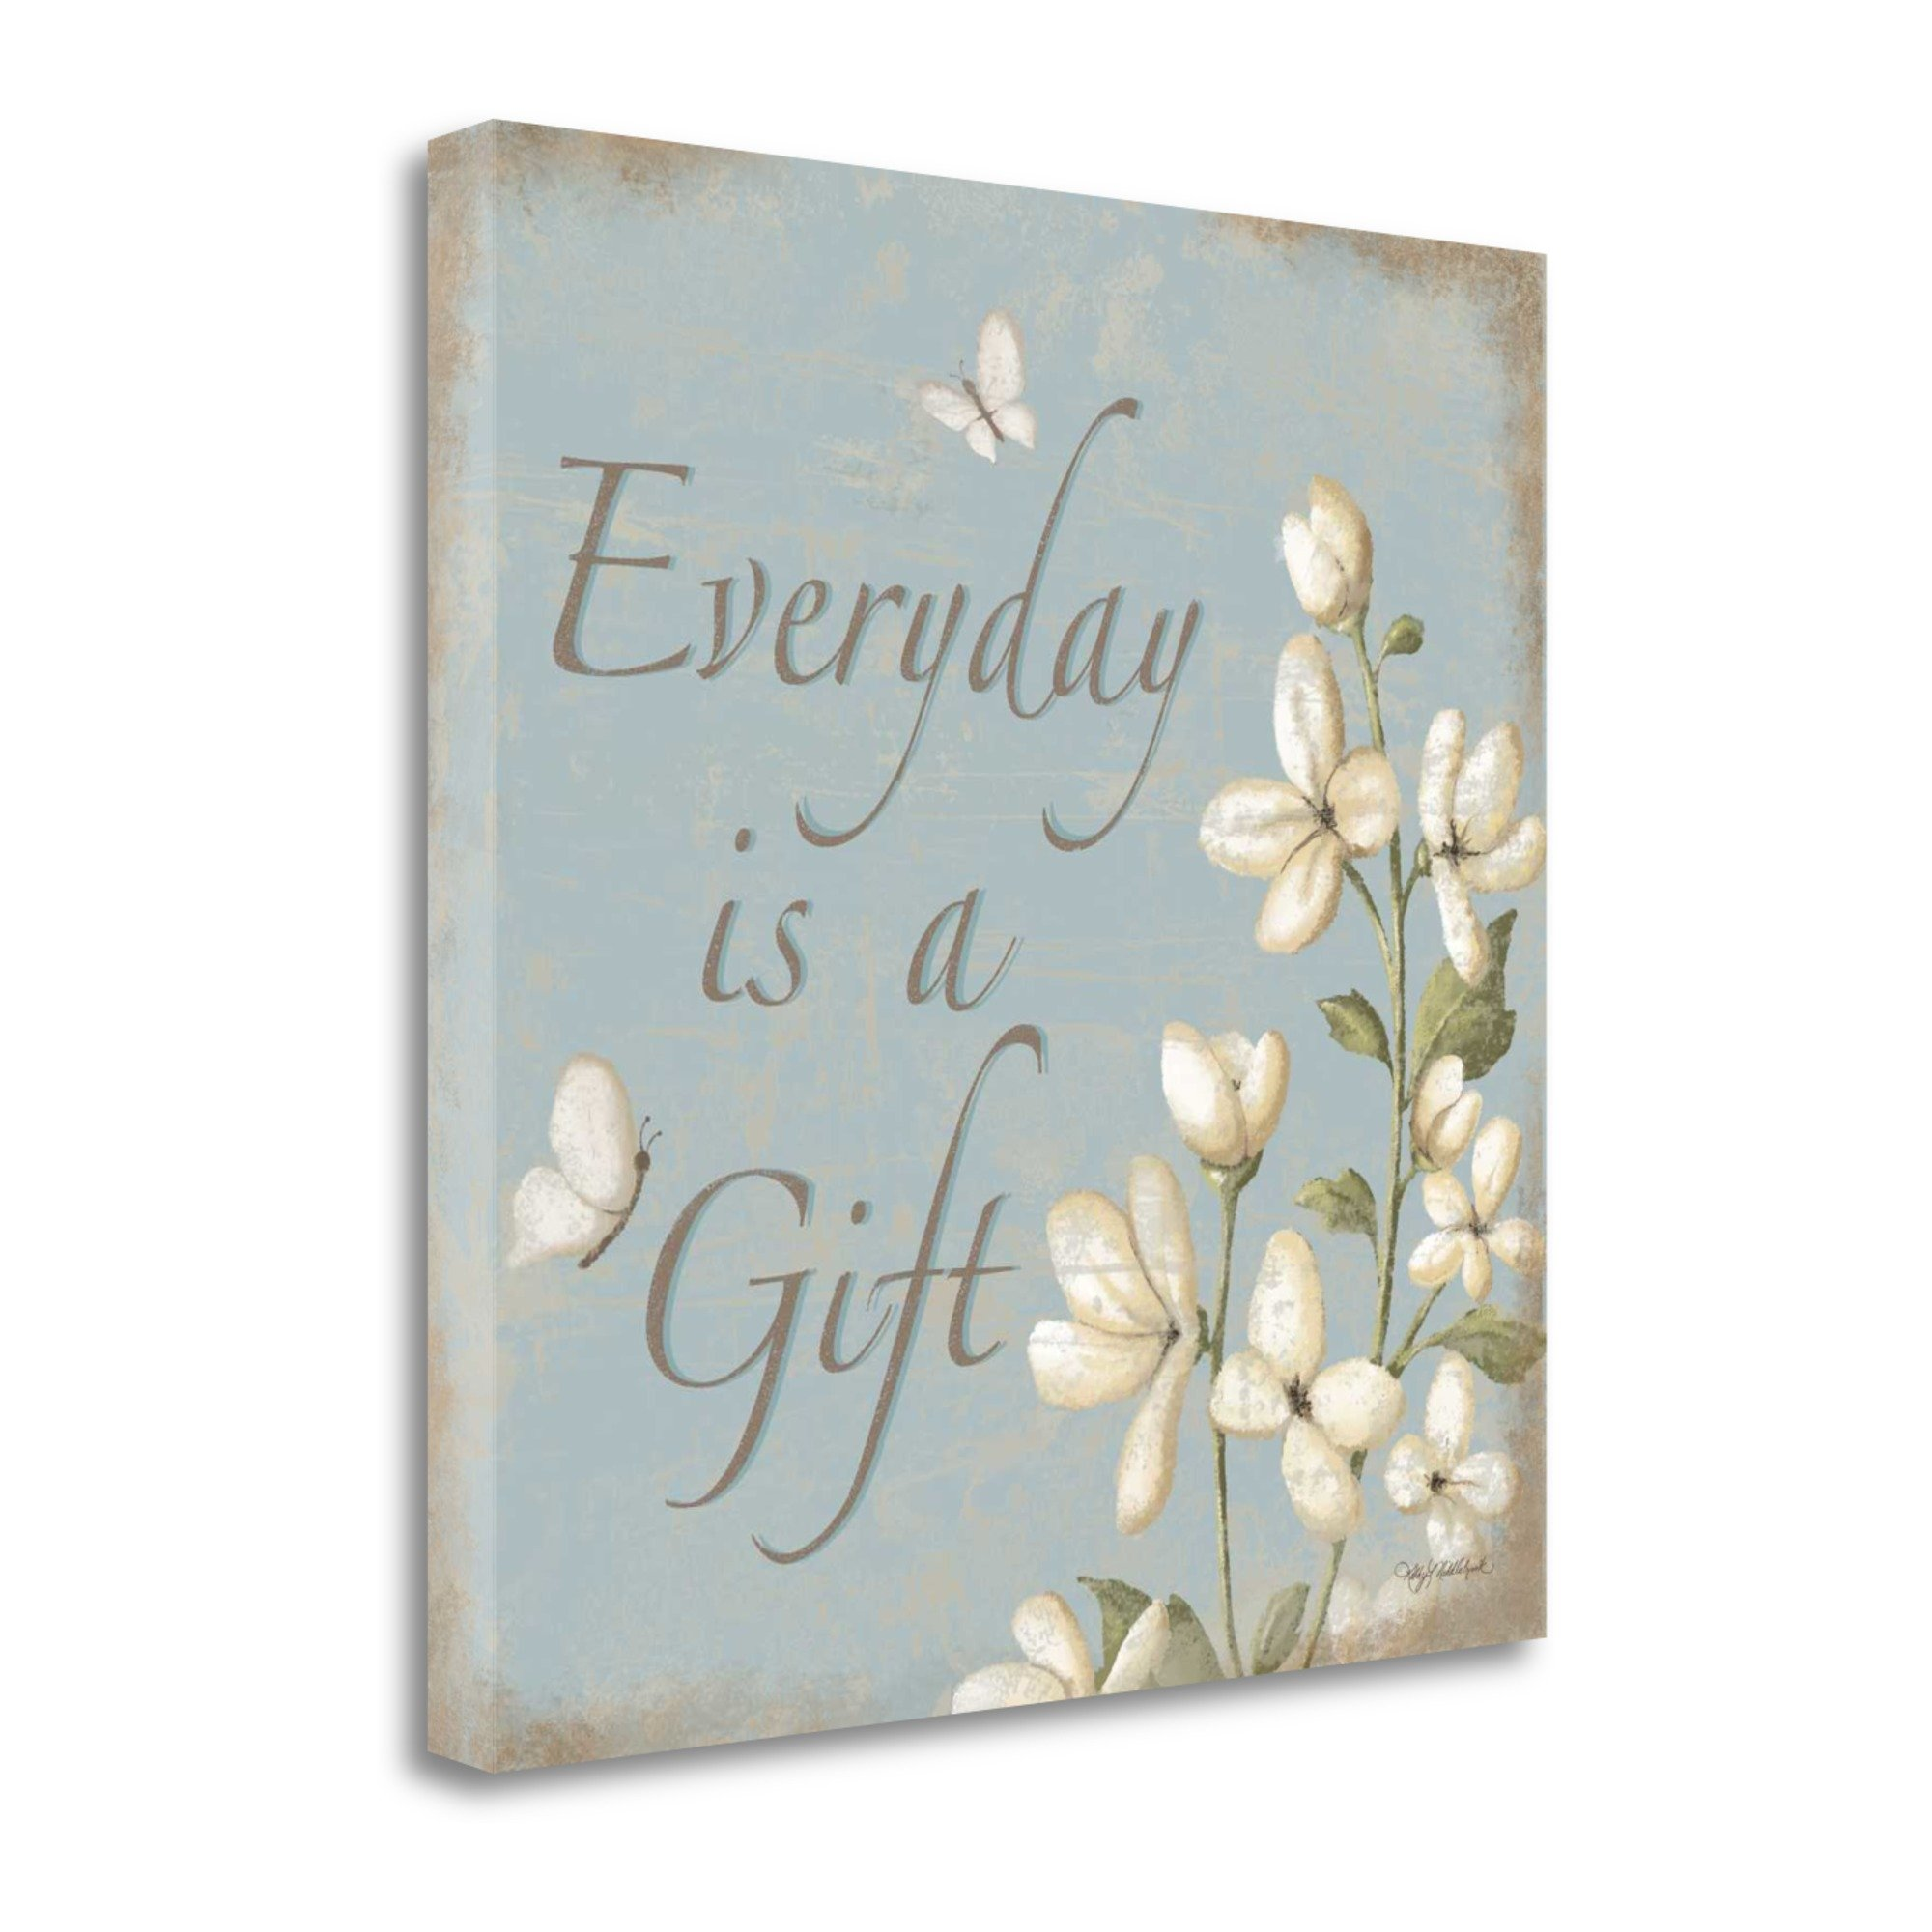 ''Everyday Is A Gift'' By Kathy Middlebrook, Fine Art Giclee Print on Gallery Wrap Canvas, Ready to Hang by Tangletown Fine Art